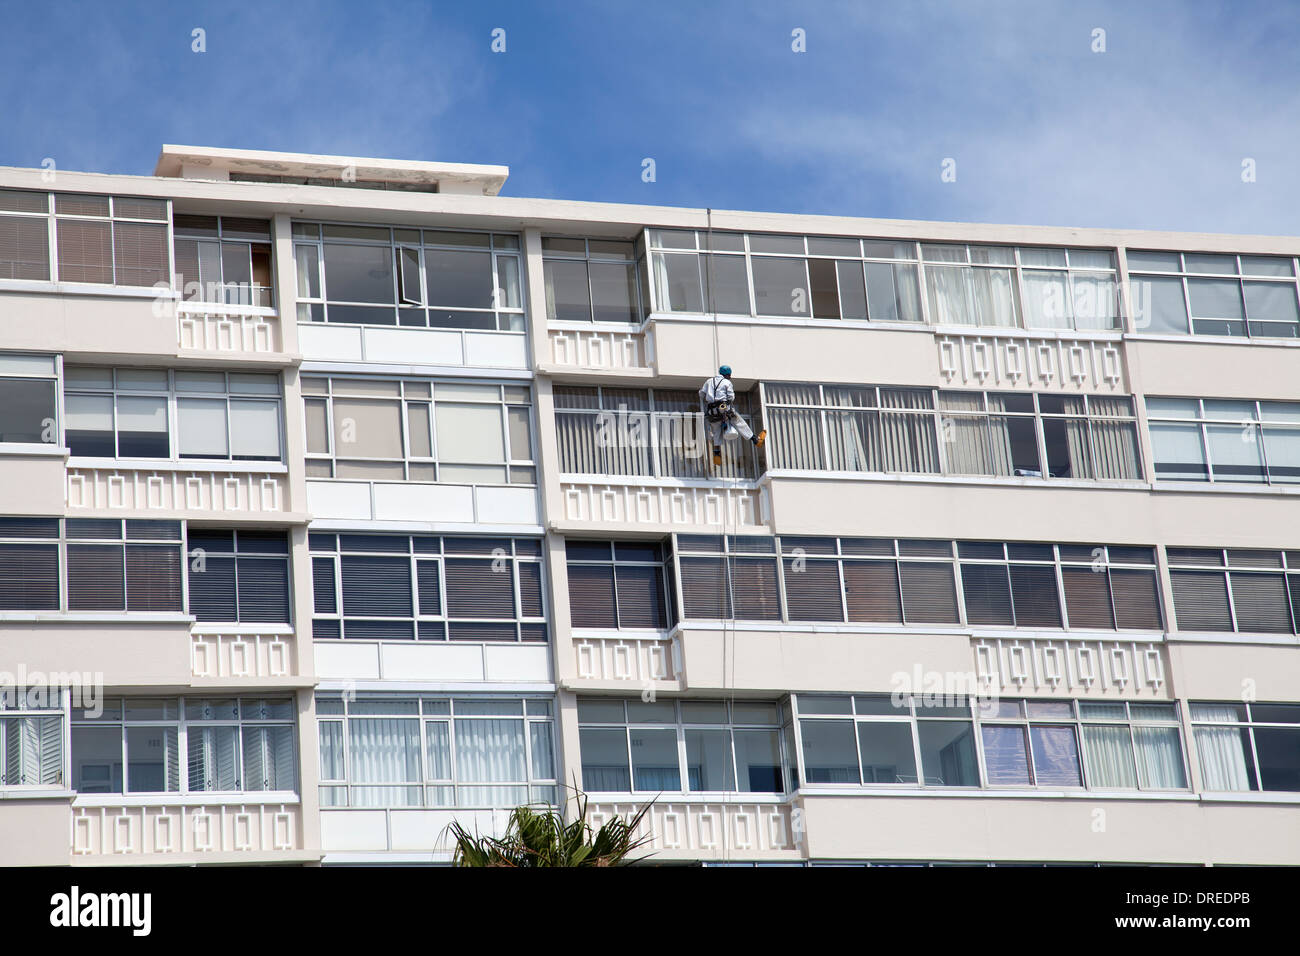 Window Cleaner Abseiling on Apartment exterior in sea Point - Cape Town - South Africa Stock Photo